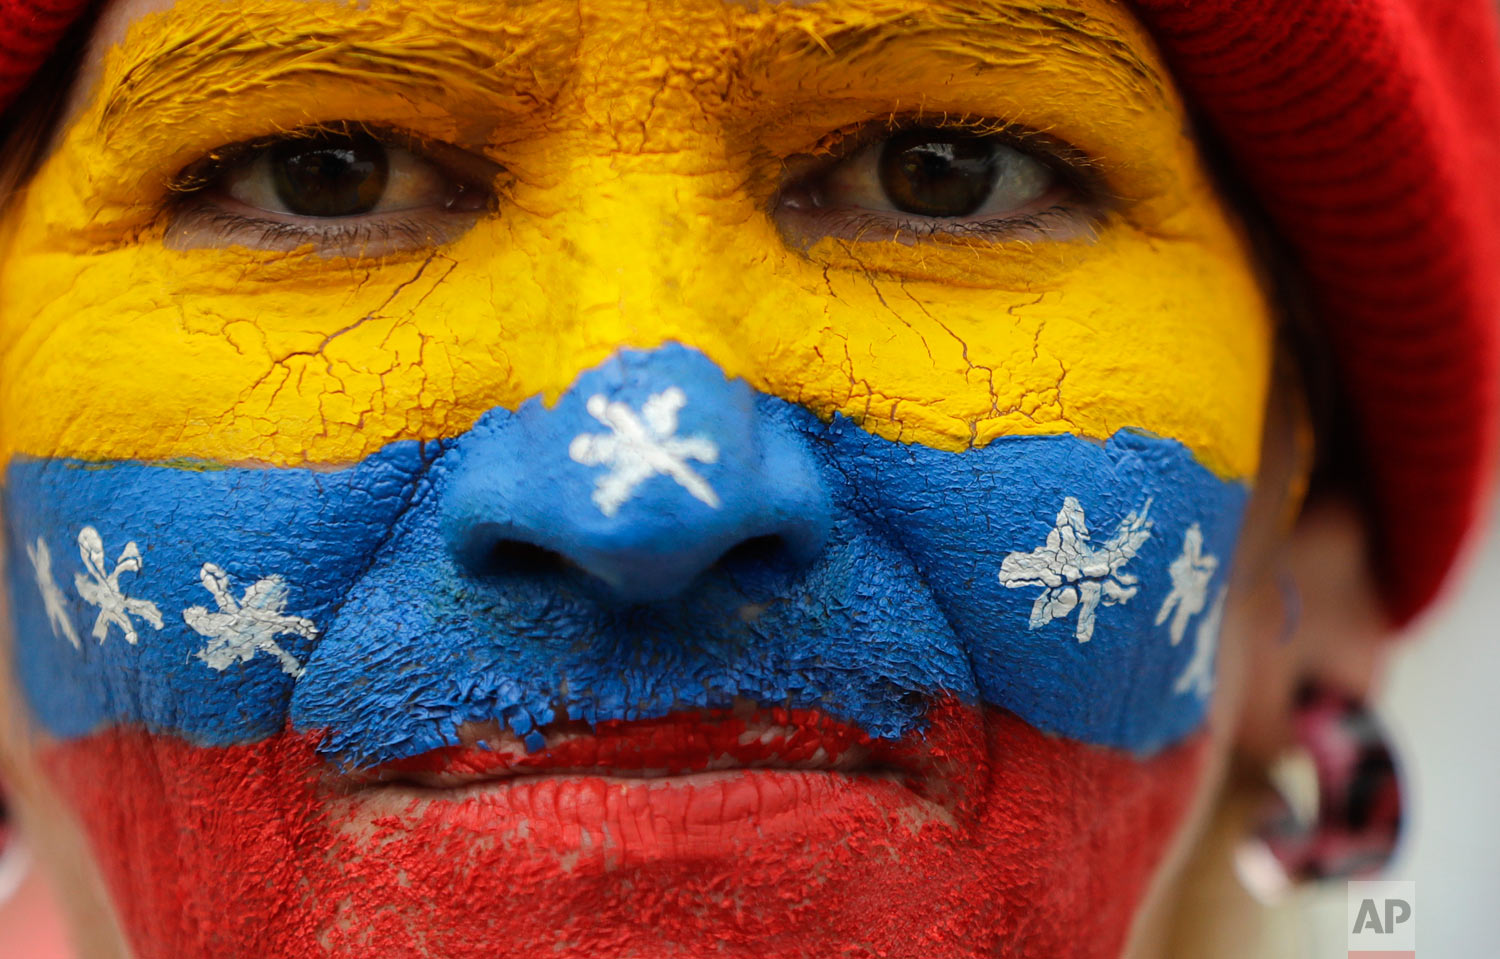 In this March 30, 2019 photo, her face painted in the colors of the national flag, a supporter of opposition leader Juan Guaido, Venezuela's self-proclaimed interim president, waits for his arrival in Los Teques, Miranda State, Venezuela. (AP Photo/Natacha Pisarenko)